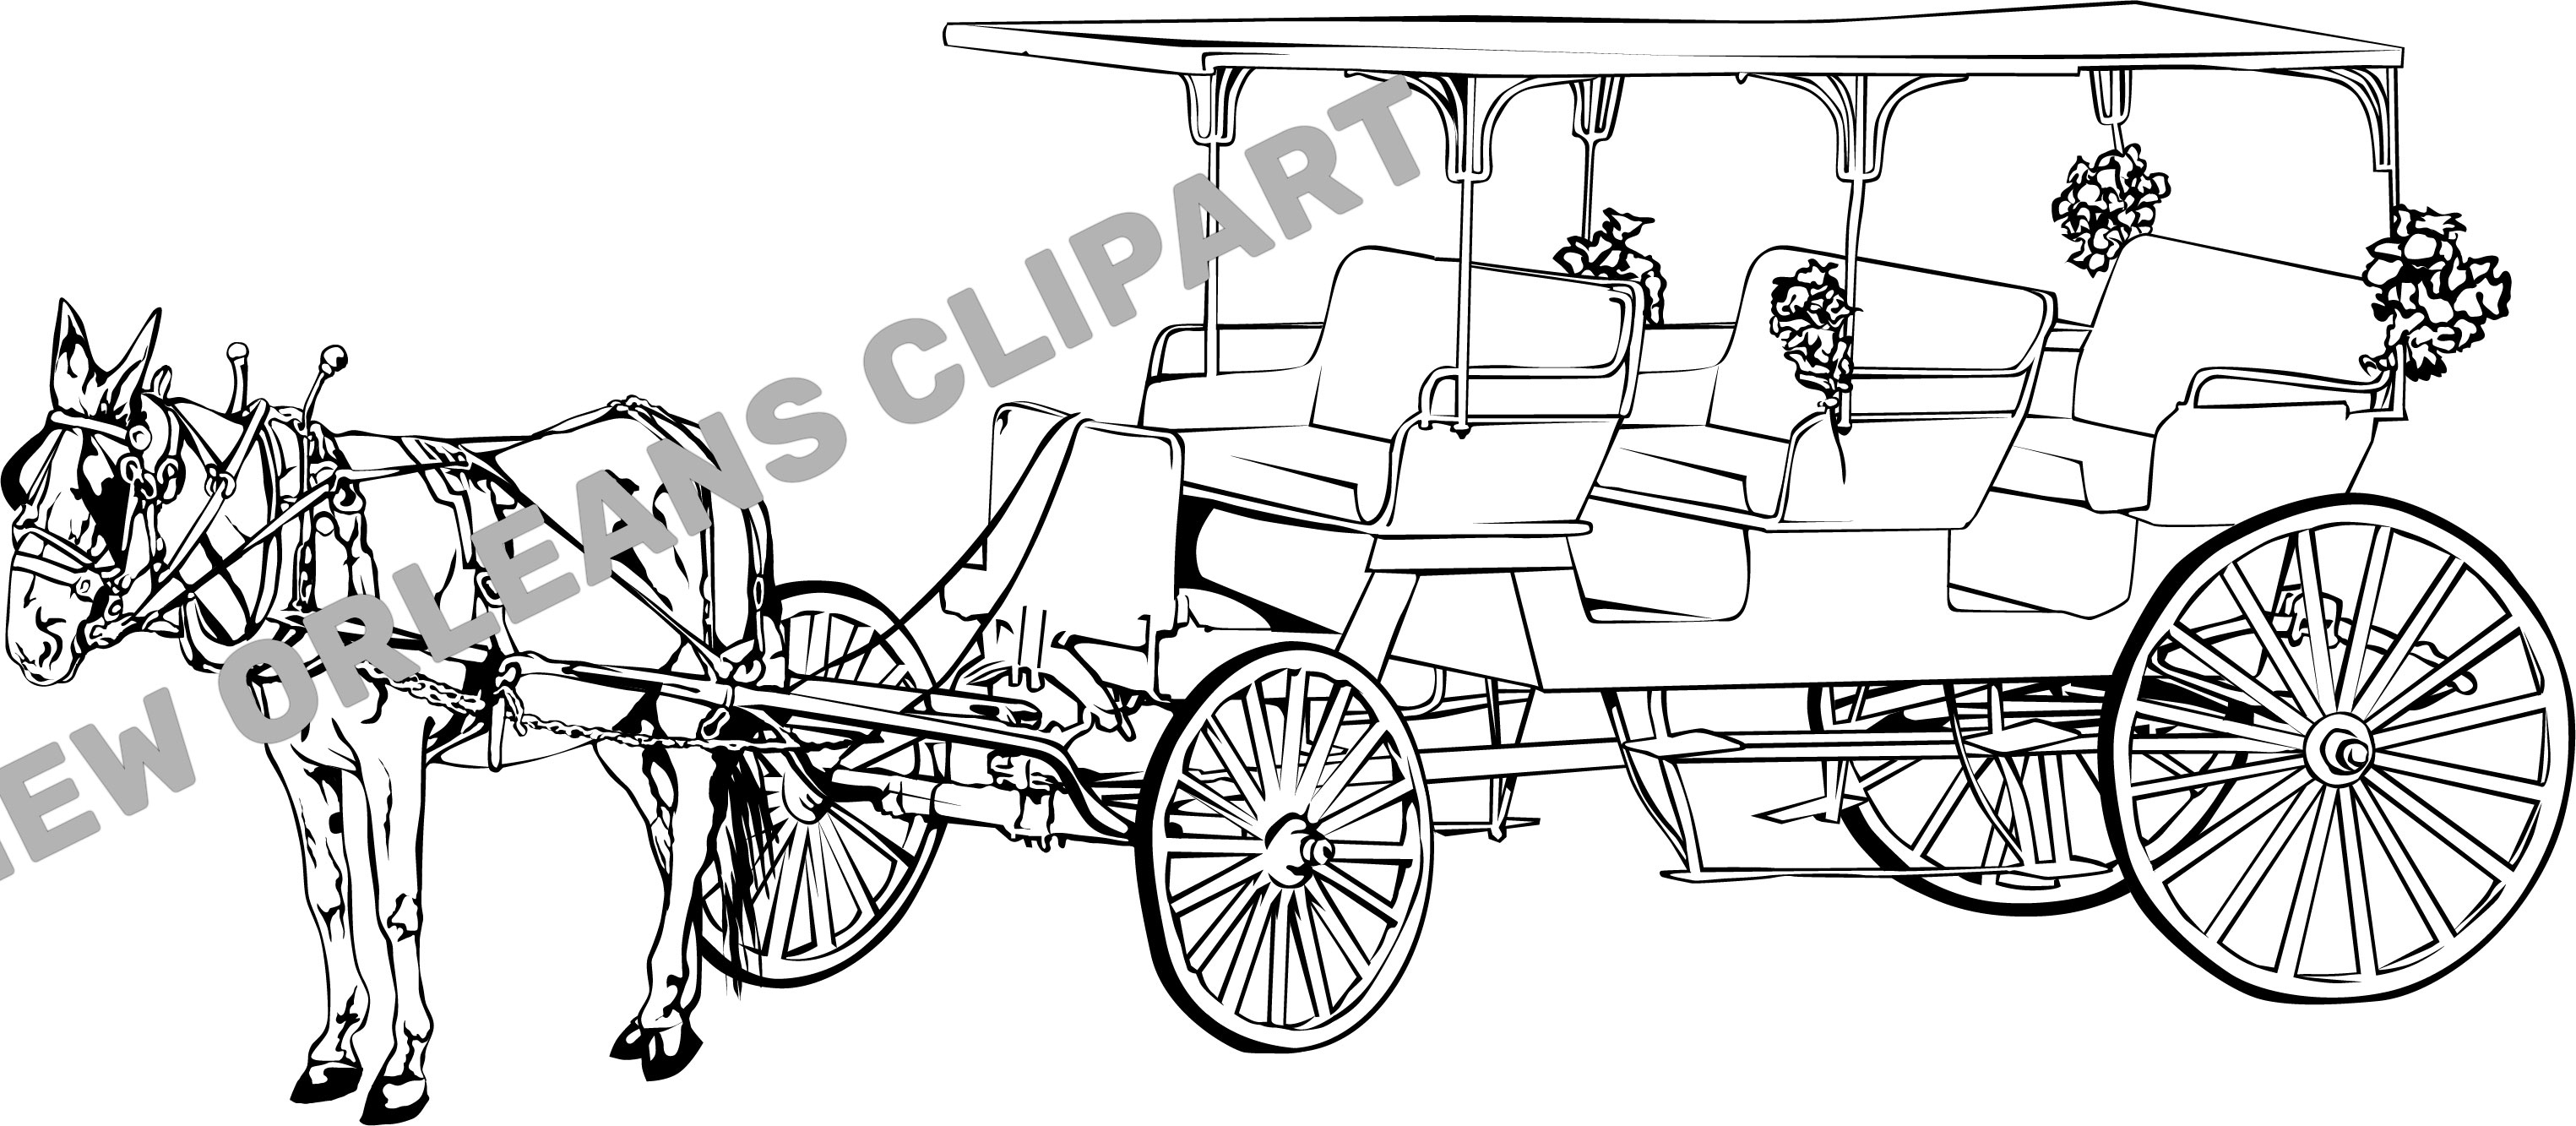 New Orleans Horse Drawn Carriage